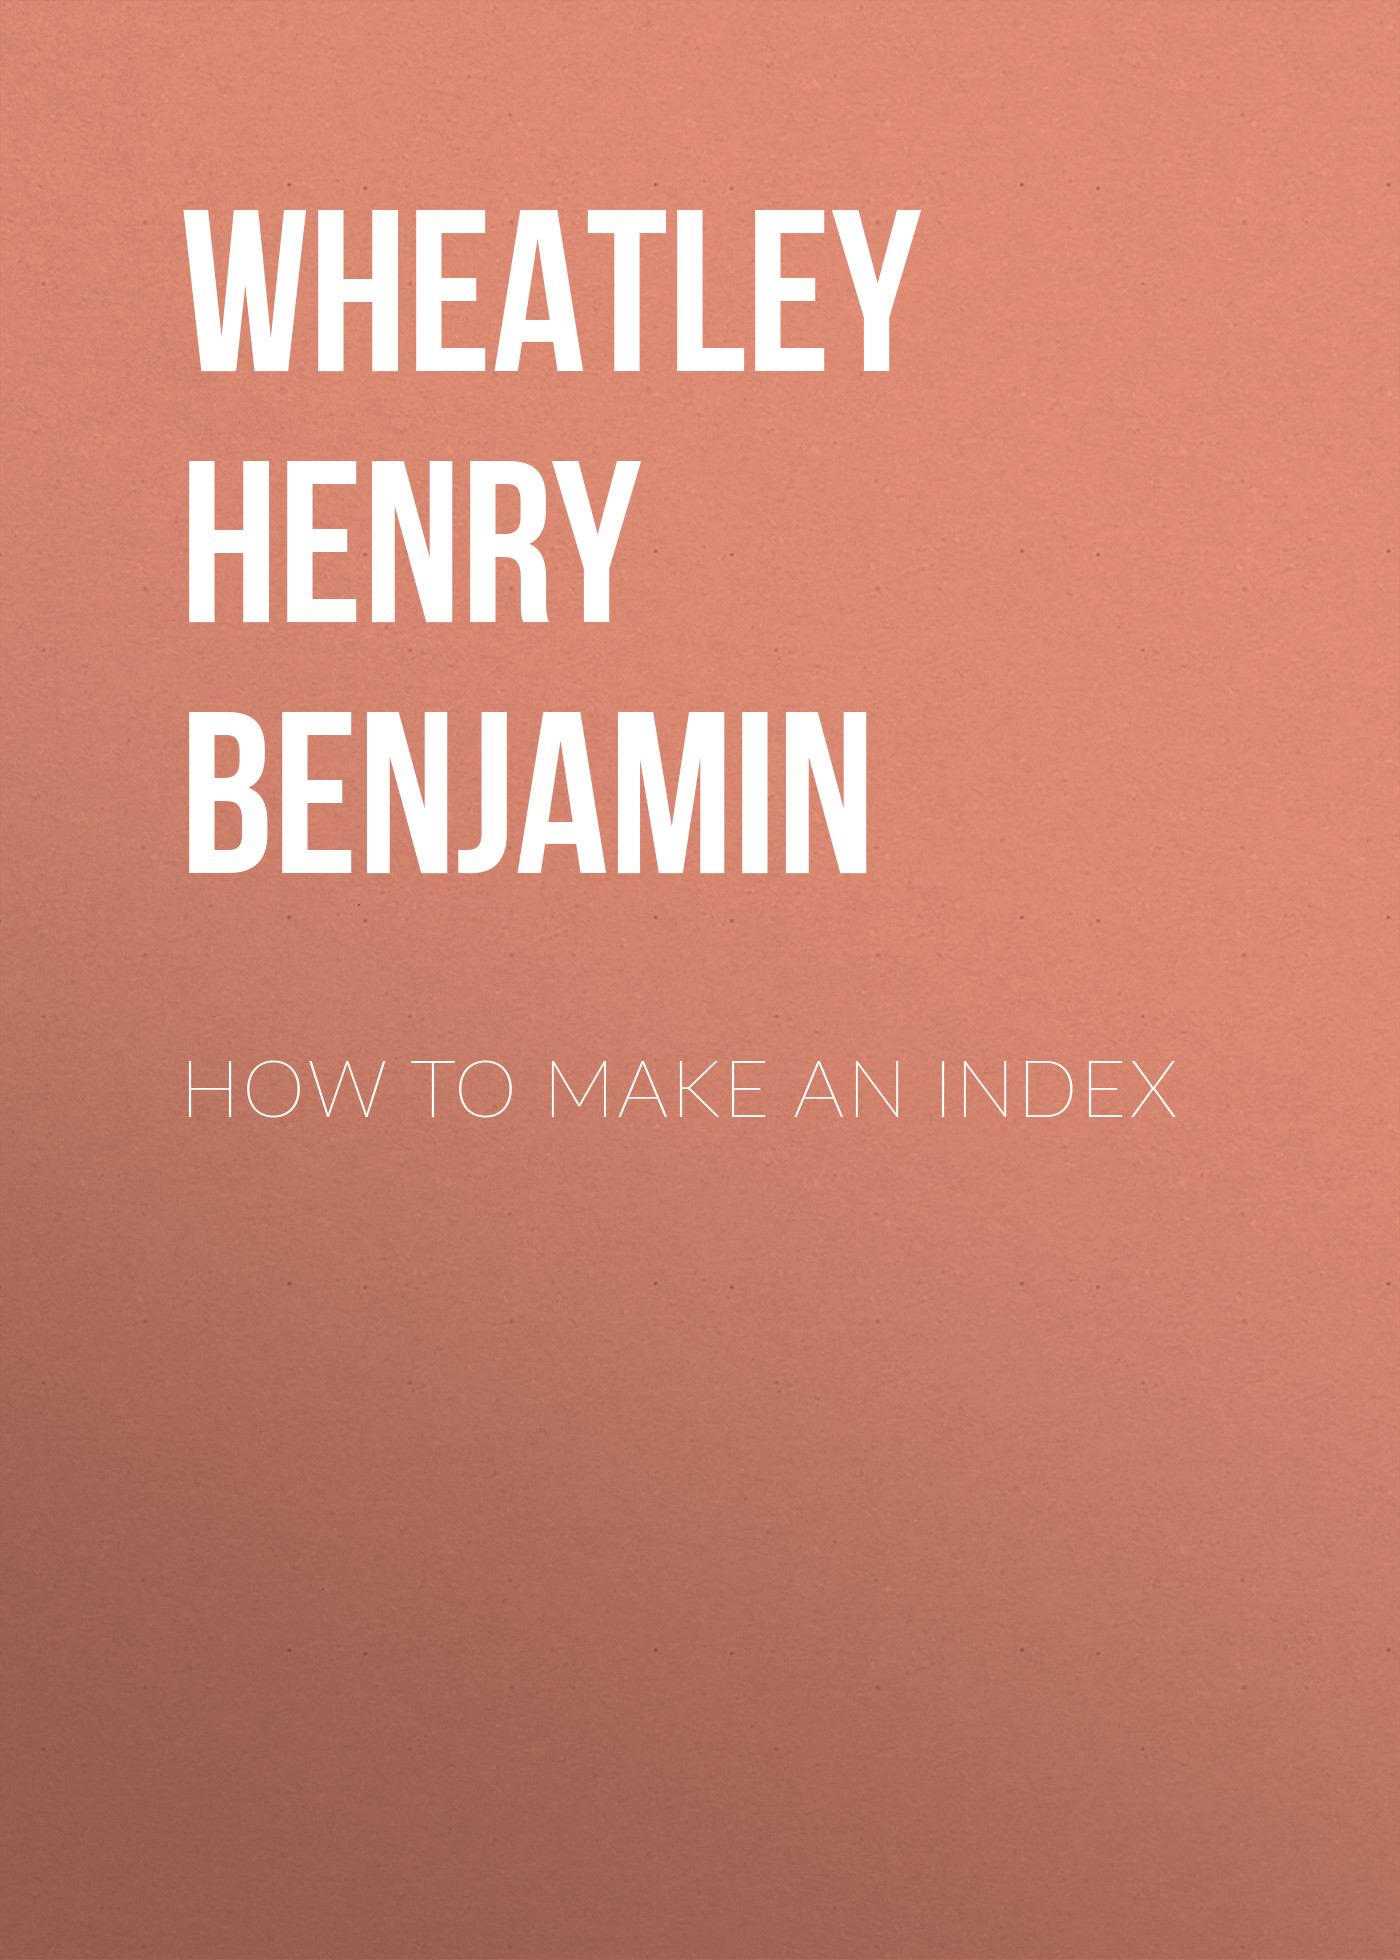 Wheatley Henry Benjamin How to Make an Index